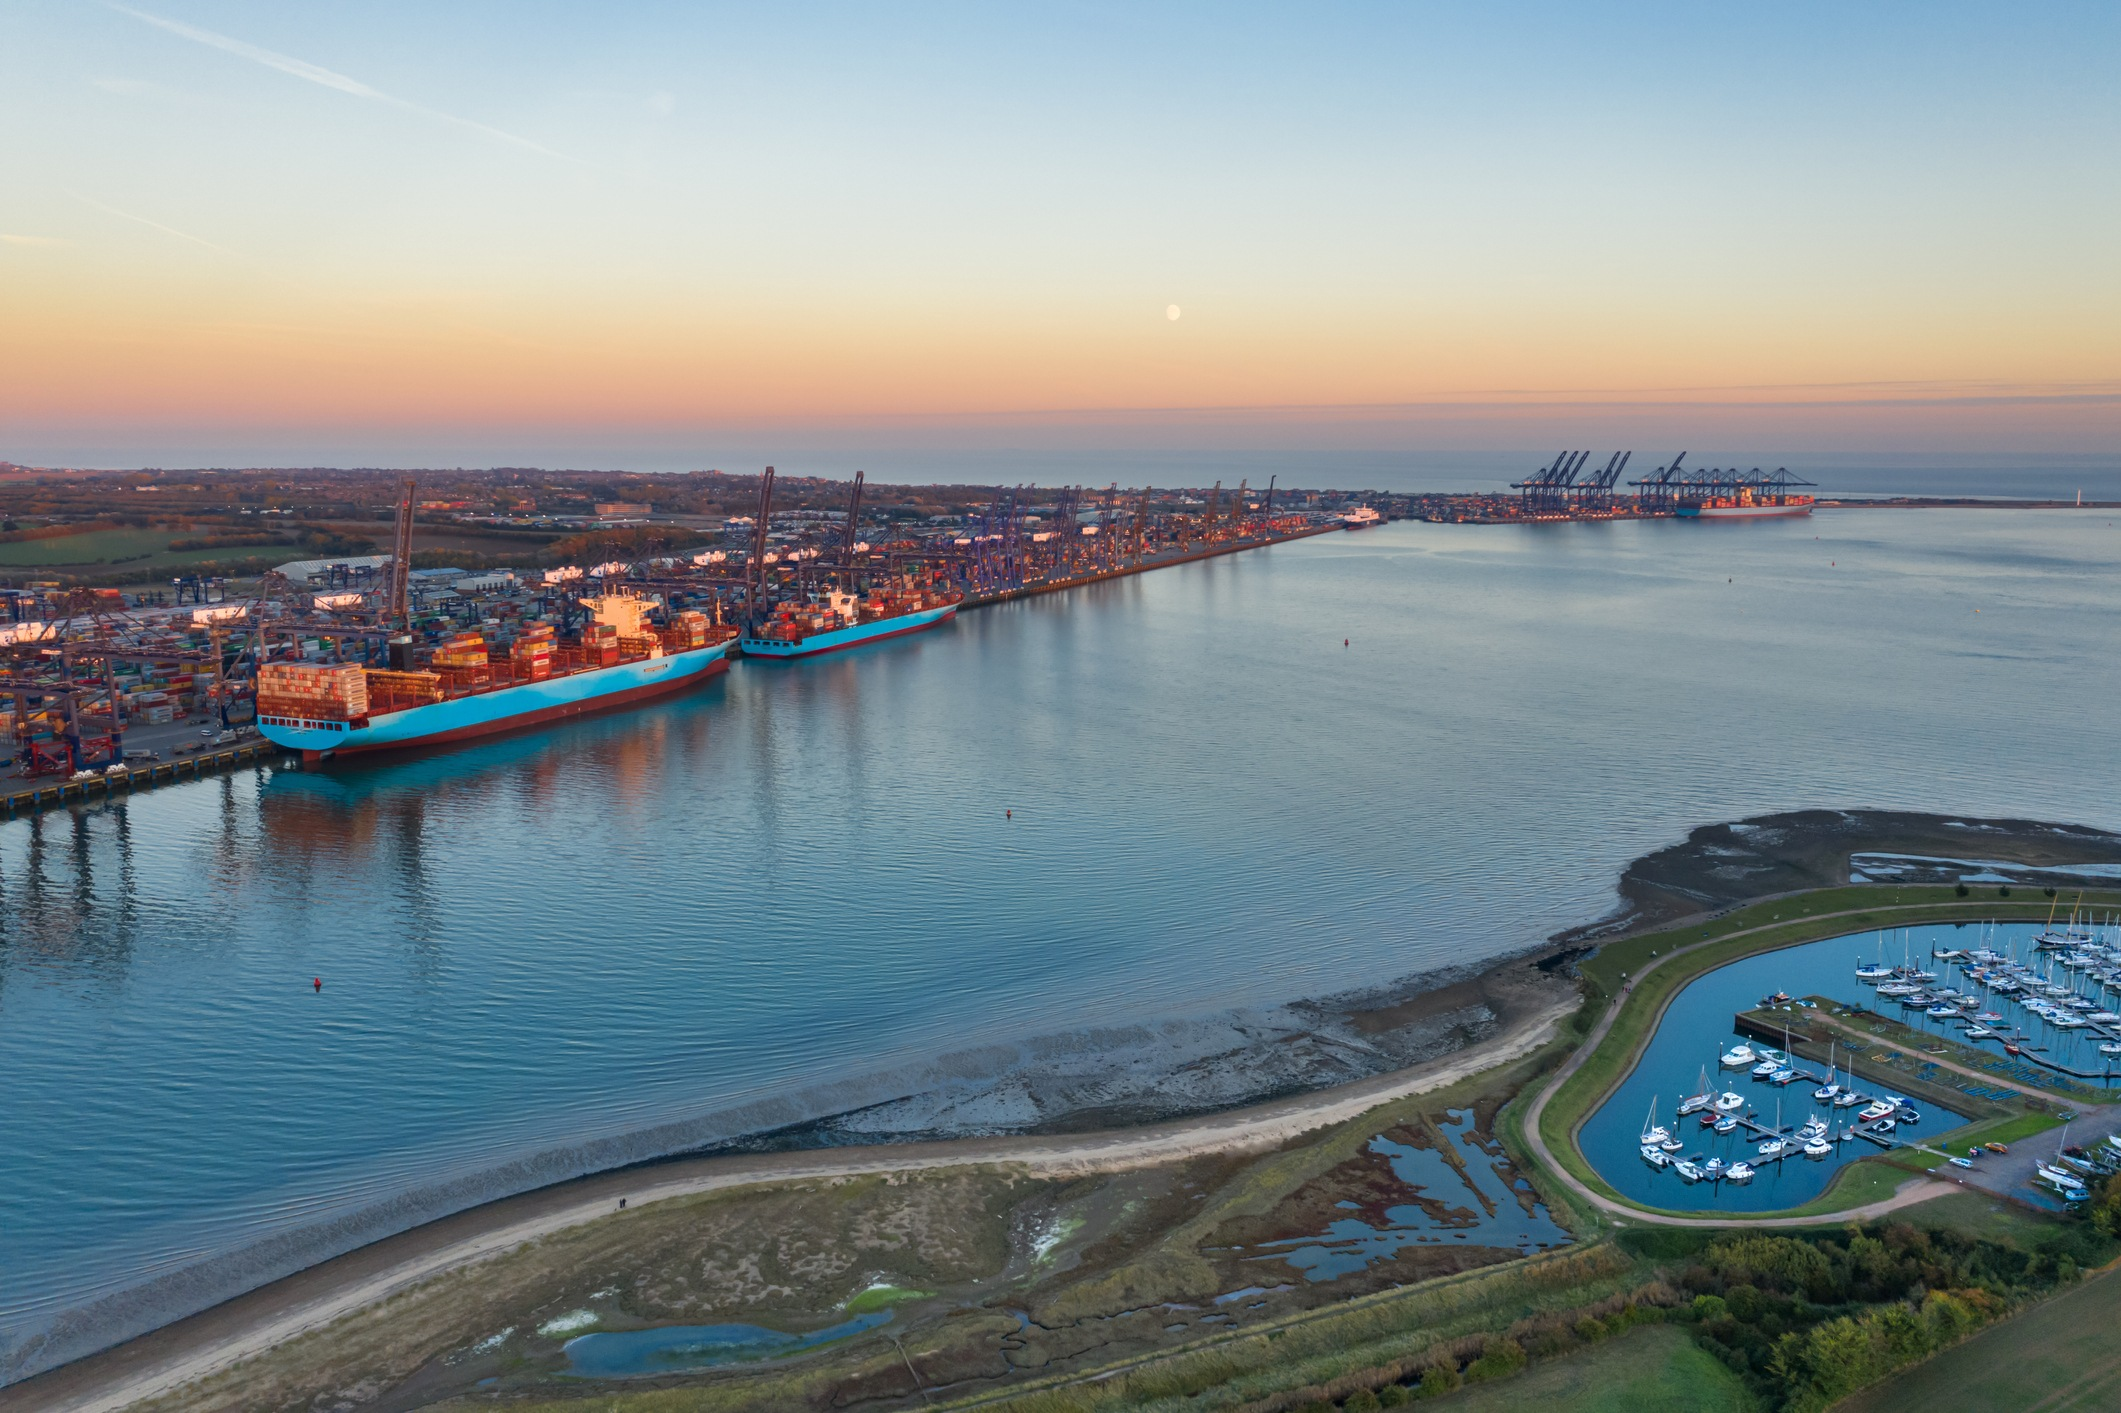 Sunset and moonrise over Felixstowe container port shot from a drone over Shotley Gate, Suffolk, United Kingdom